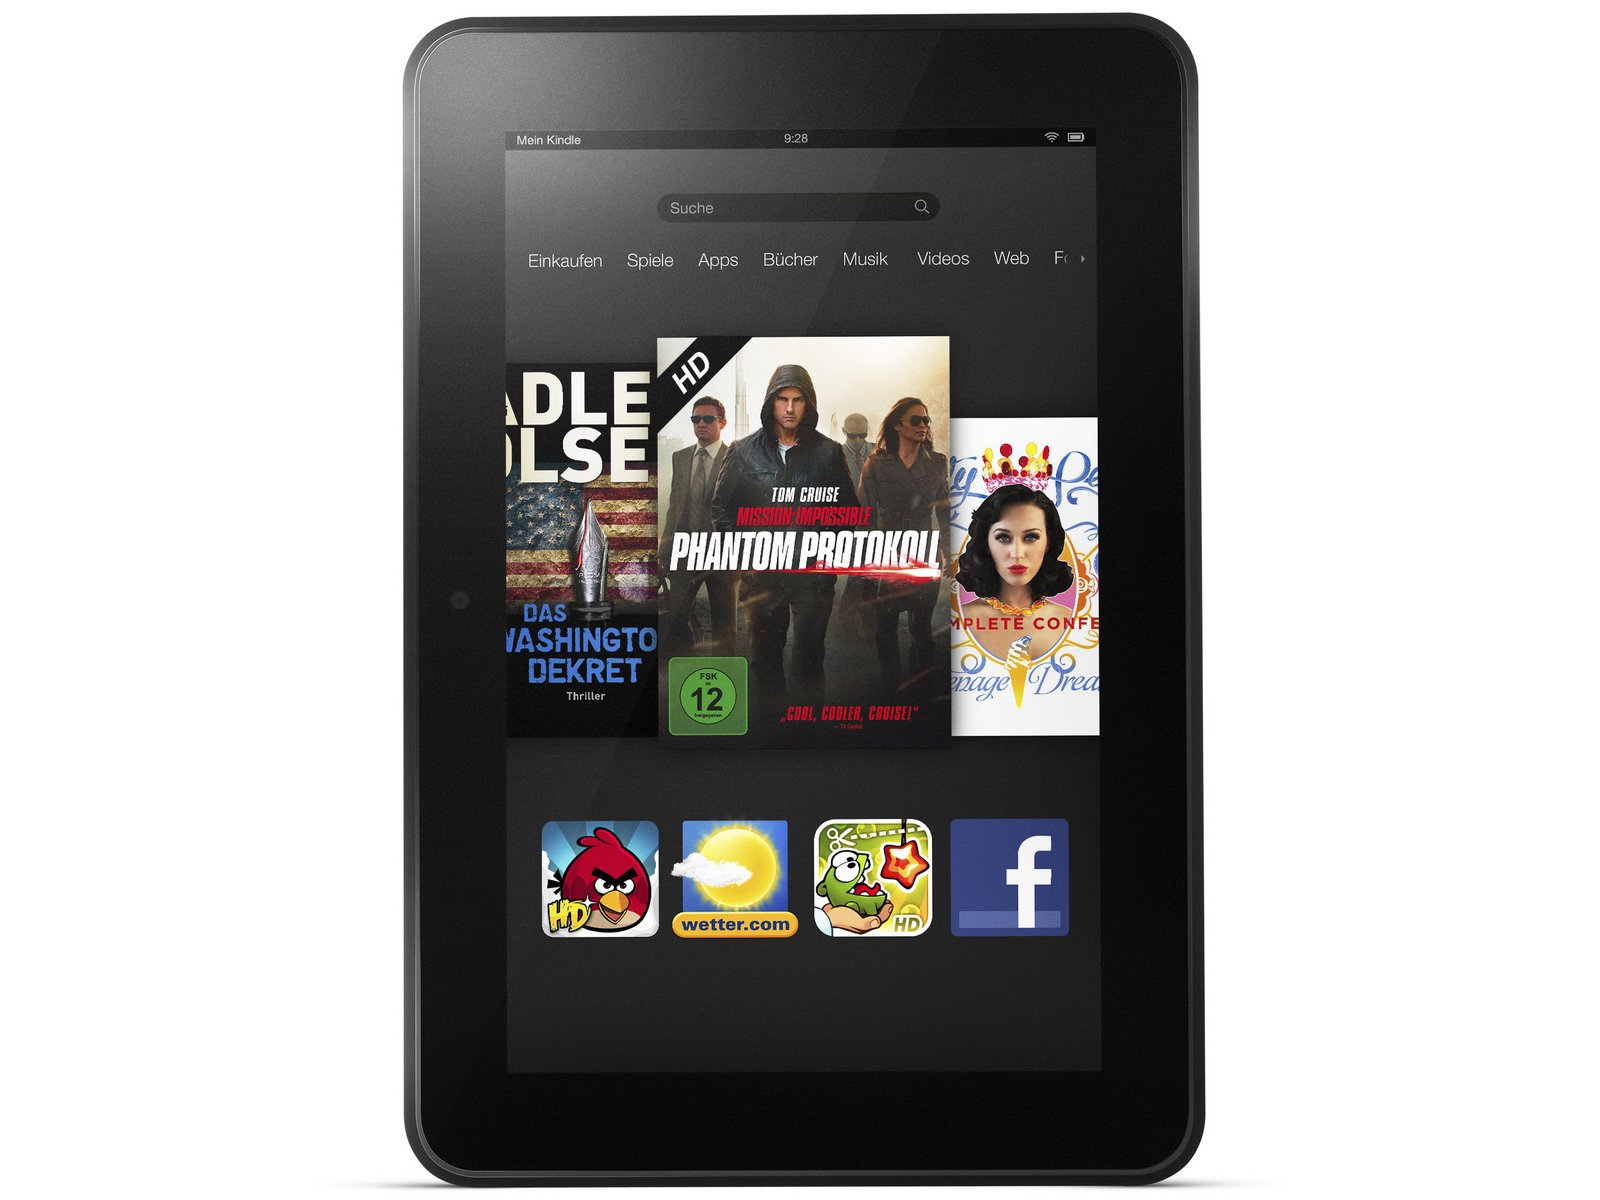 Kindle Fire Hd Photos Images And Wallpapers Mouthshutcom